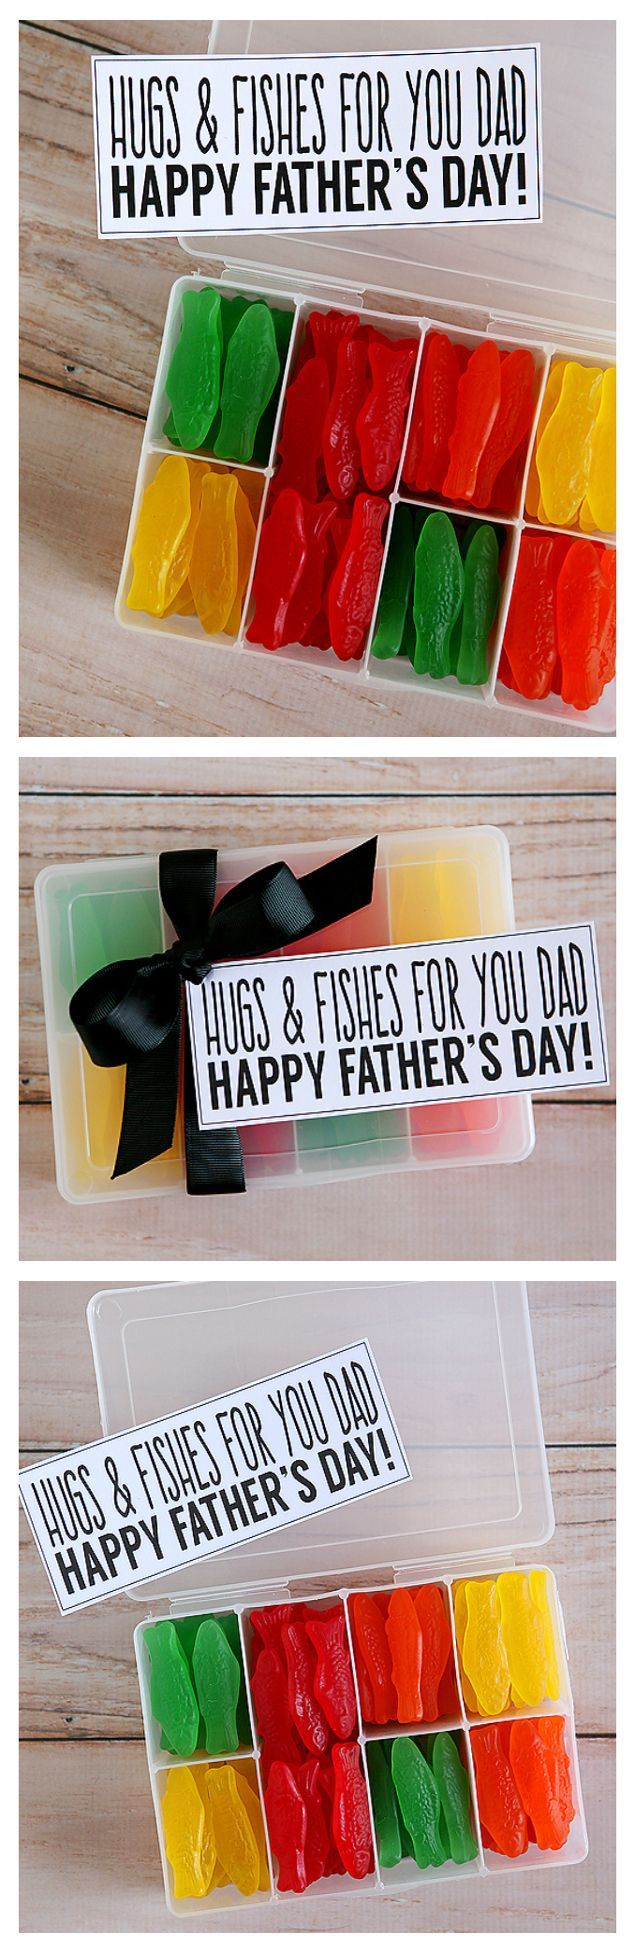 38 best Father\'s Day images on Pinterest | Father\'s day, Father\'s ...